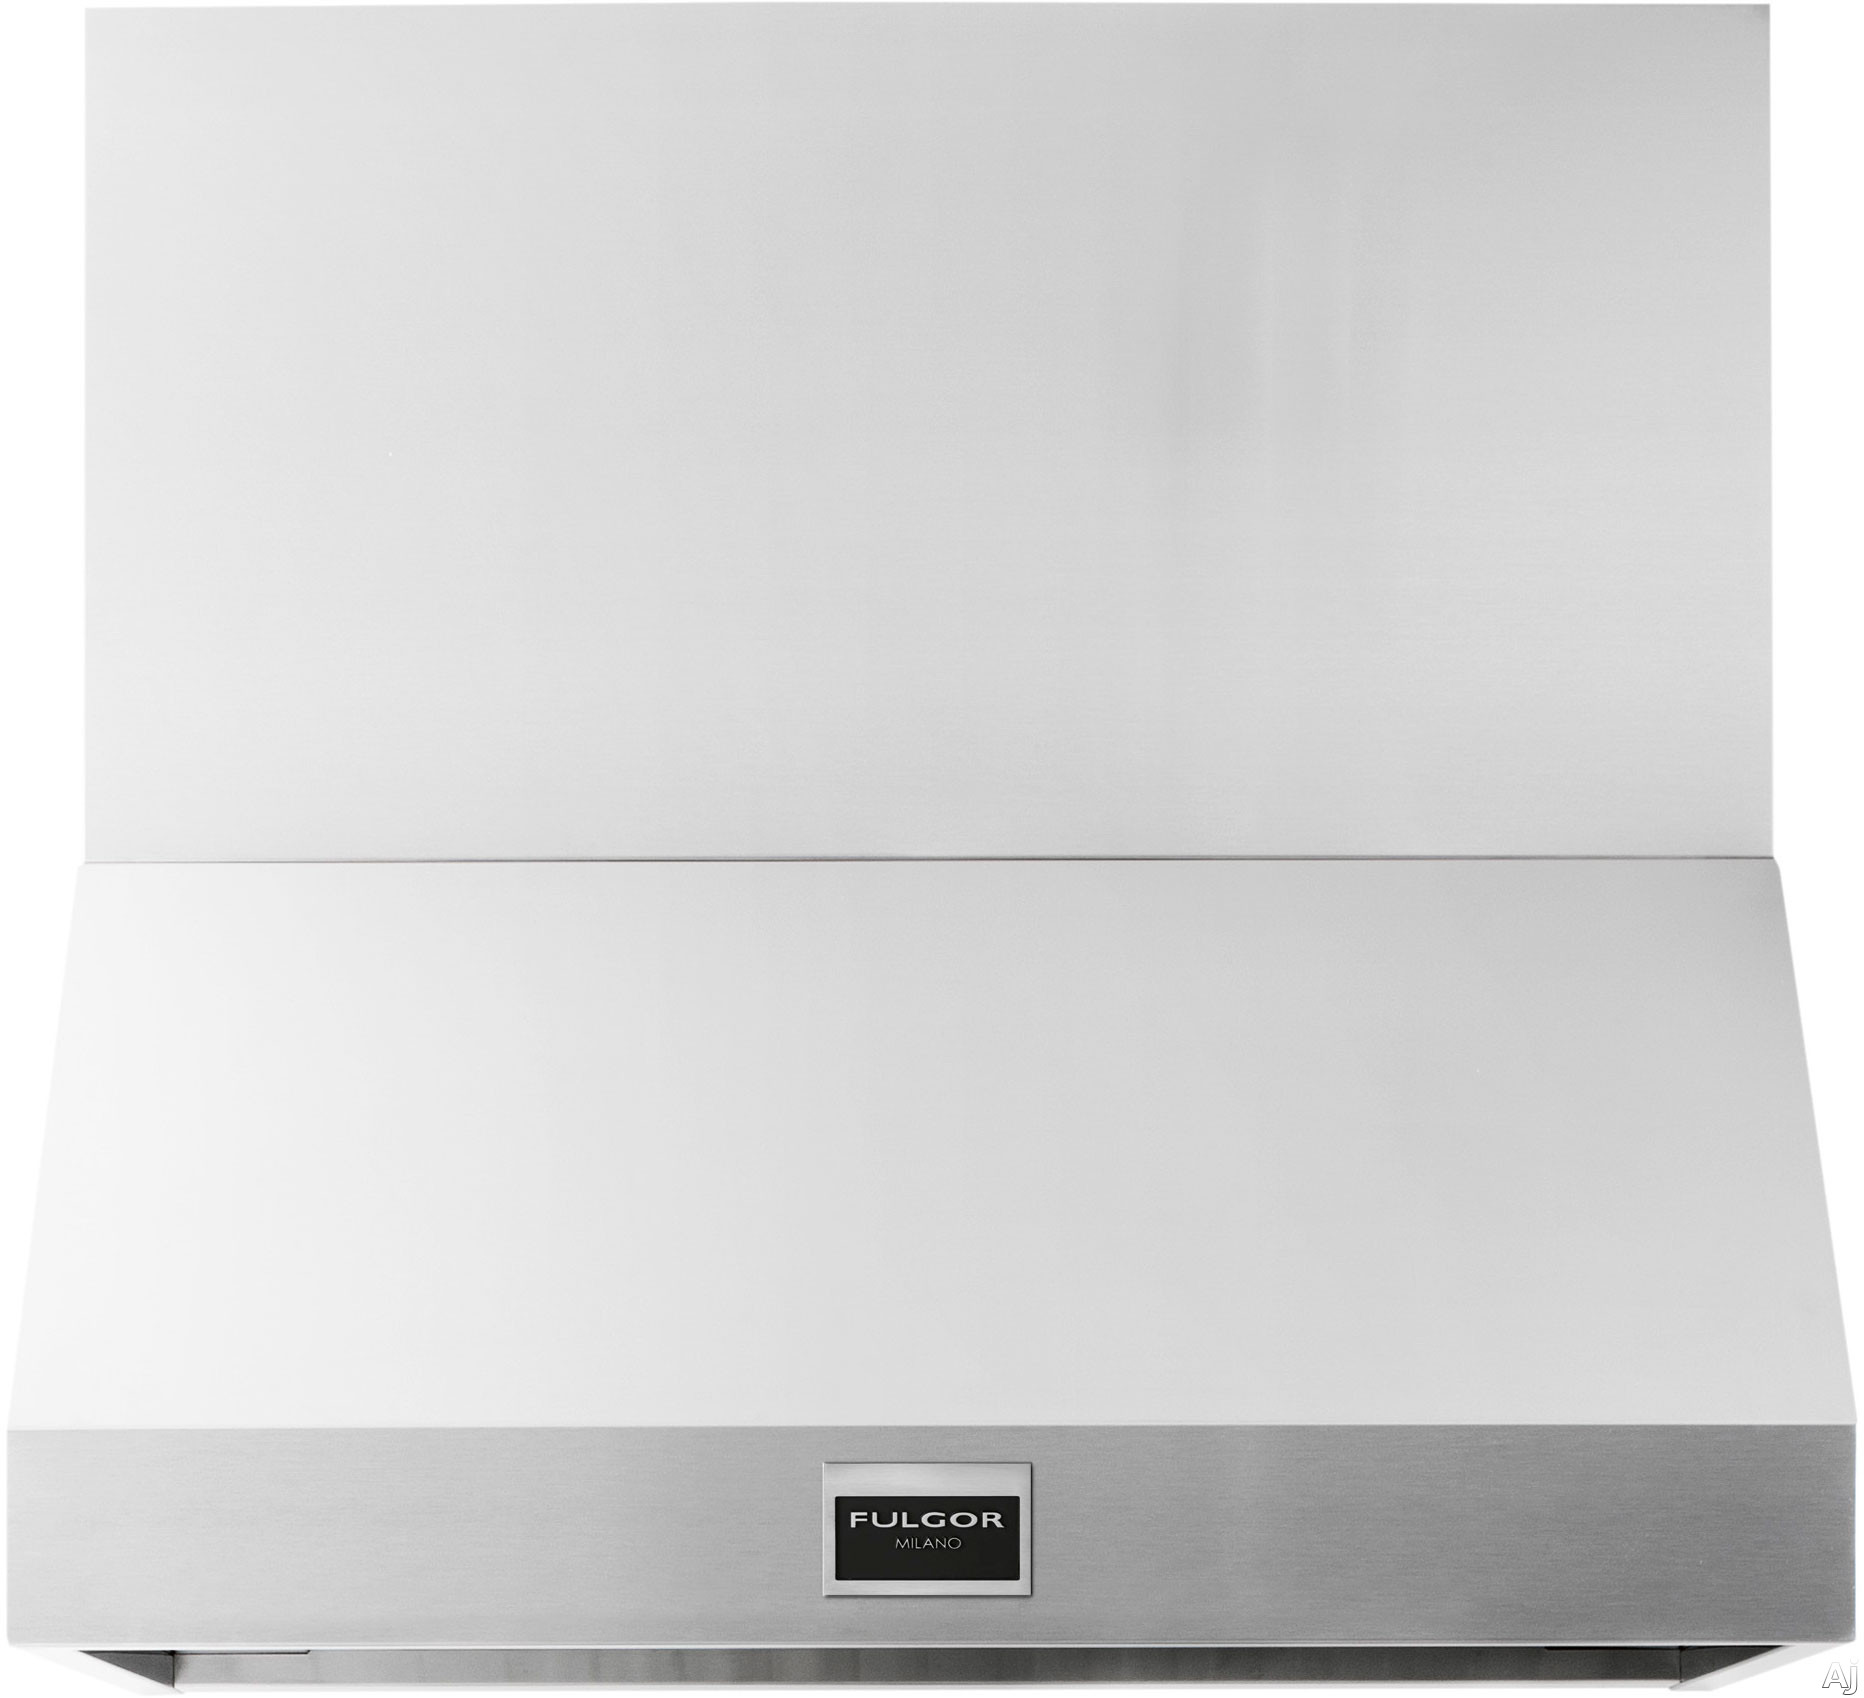 Fulgor Milano Sophia Series F6PH36S1 36 Inch Professional Wall Mount Hood with 600 CFM Internal Blower Stainless Steel Baffle Filters Mechanical Controls 4 Speed Blower Fan LED Lighting and Recirculating Options